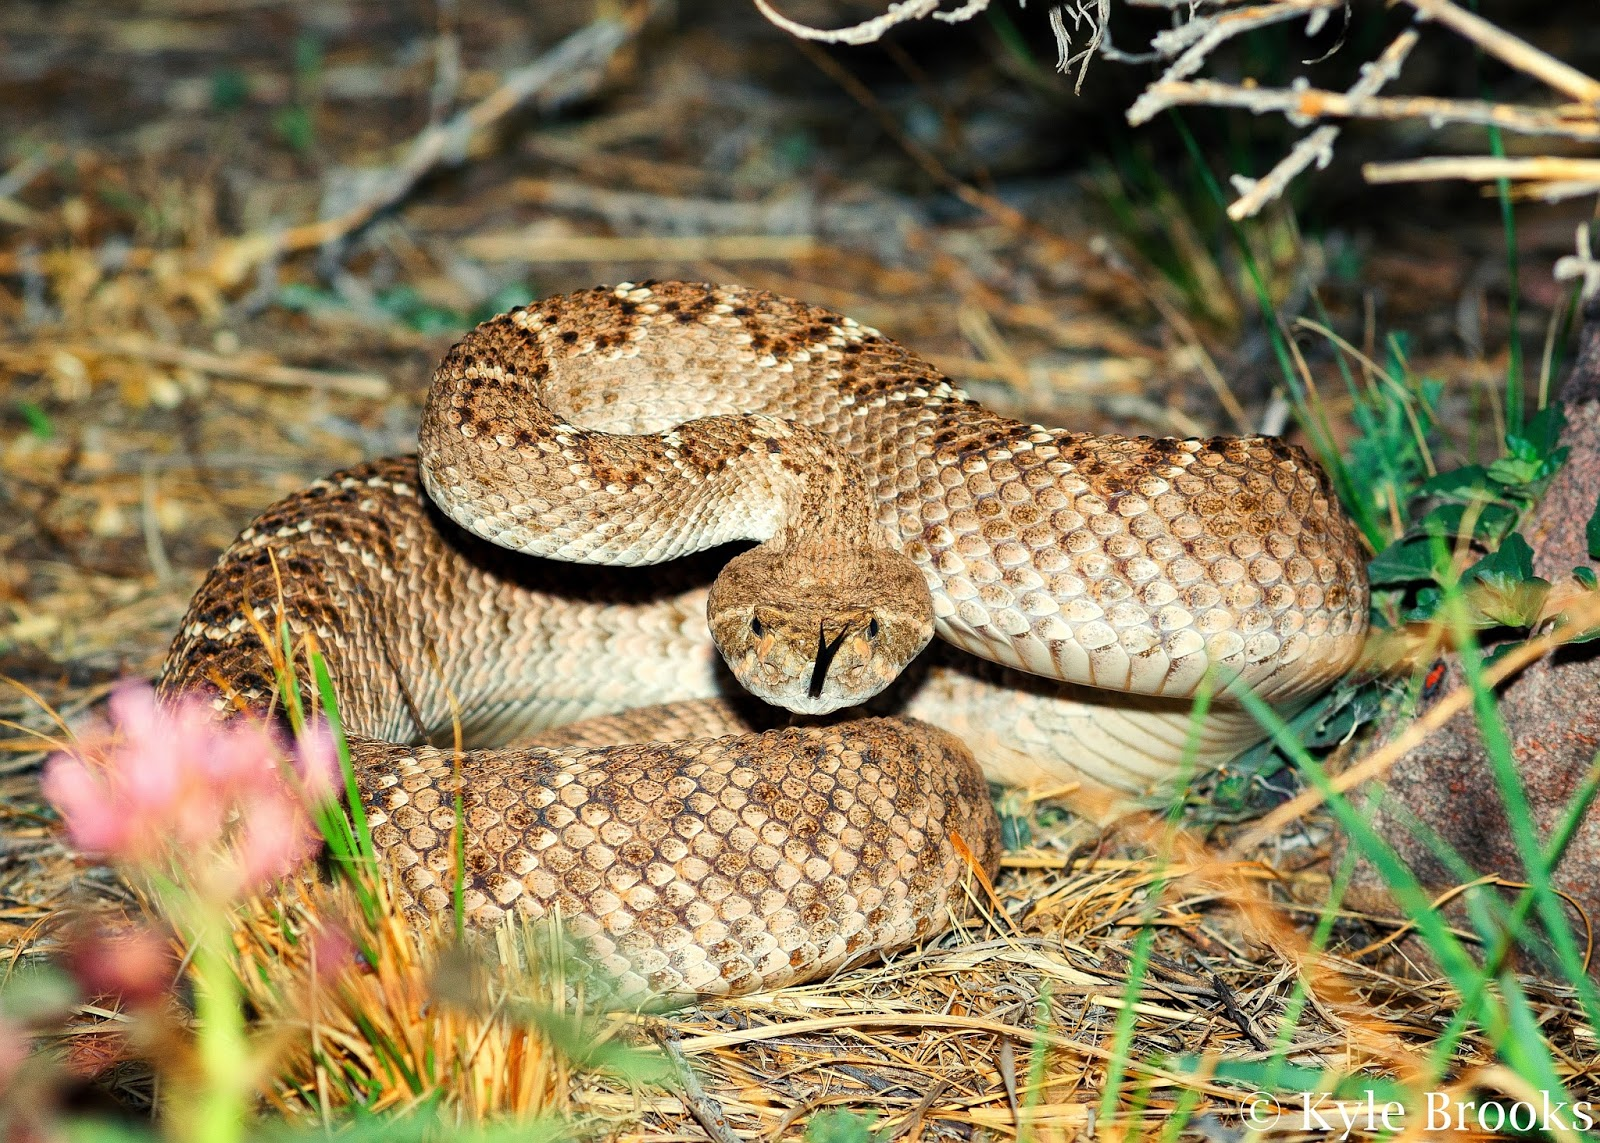 Rattlesnake defense position